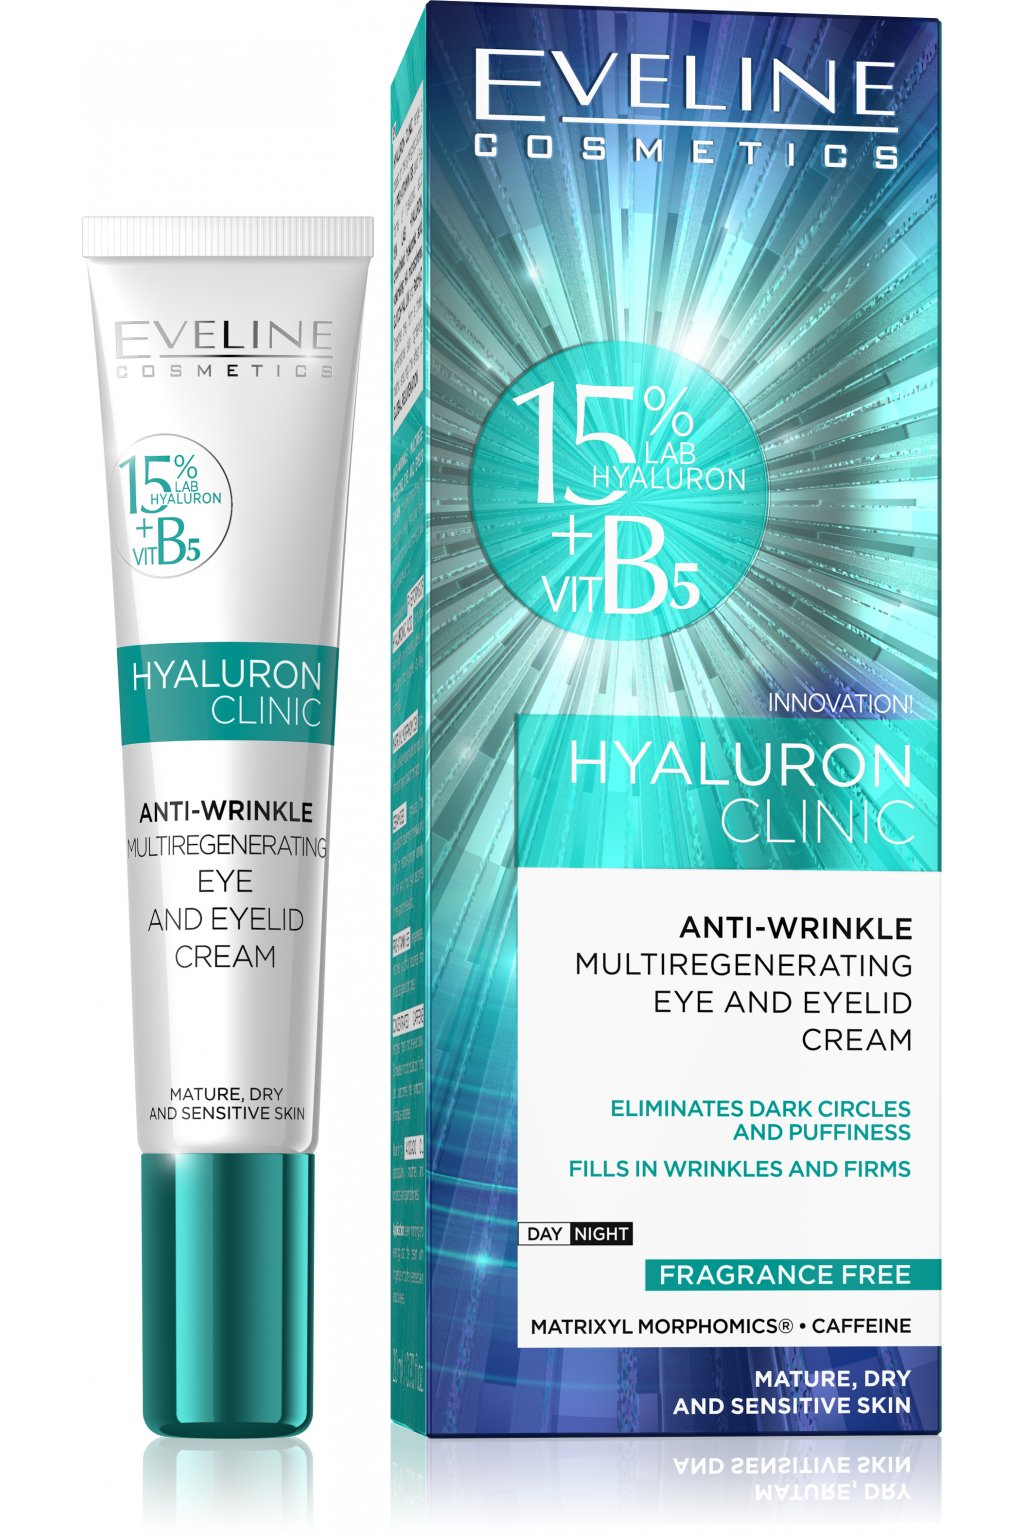 eveline cosmetics hyaluron clinic eye and eye lid cream